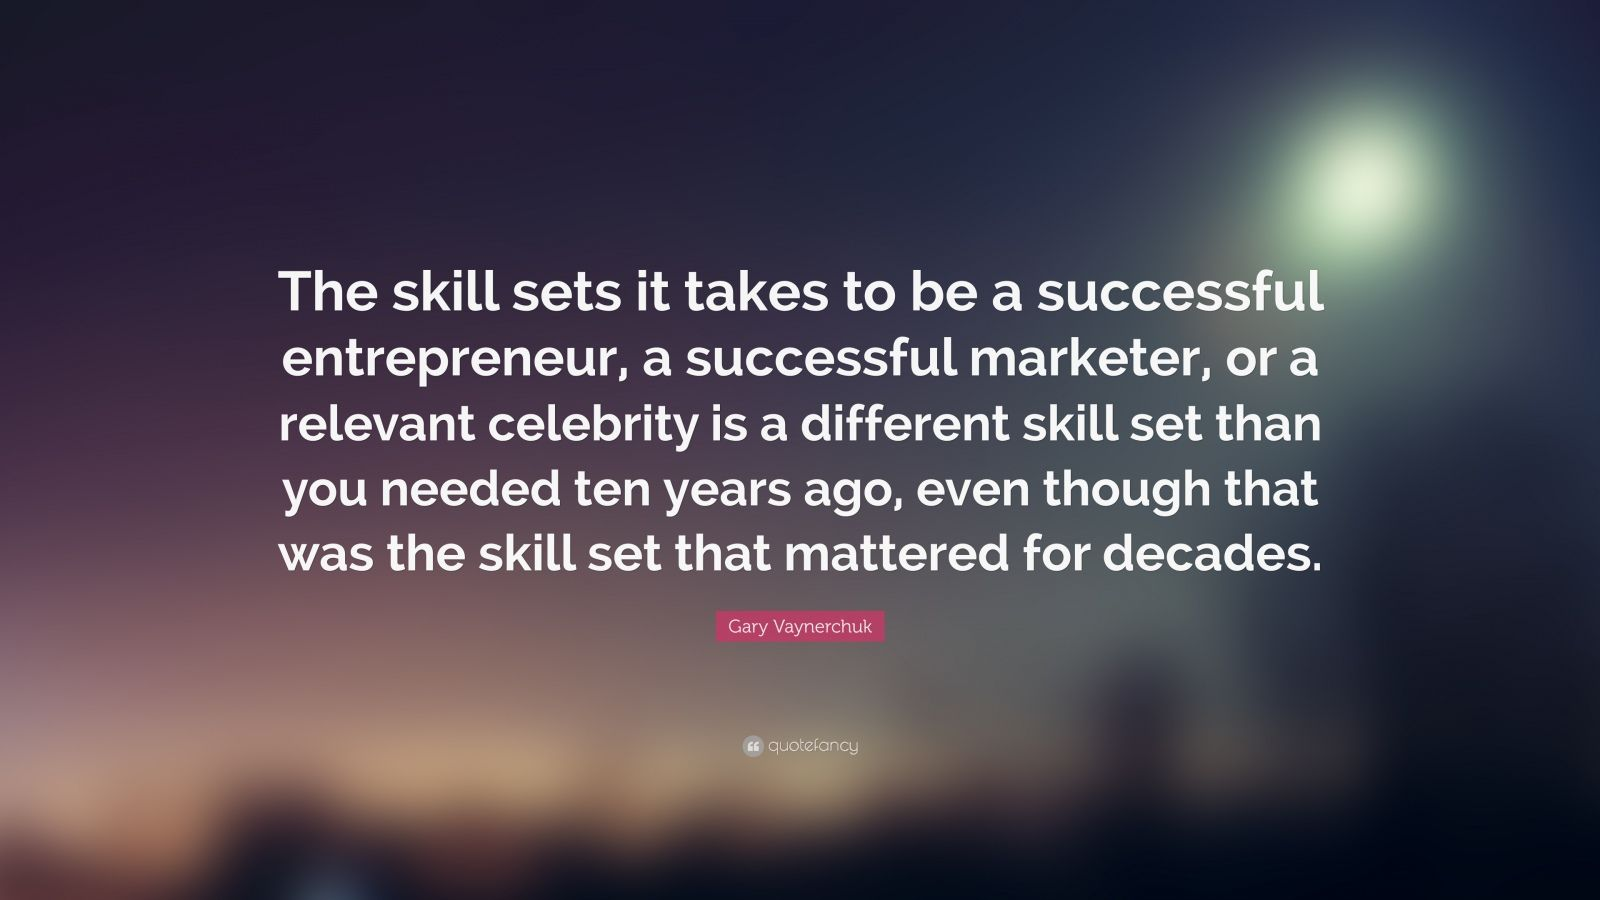 """Gary Vaynerchuk Quote: """"The skill sets it takes to be a successful entrepreneur, a successful marketer, or a relevant celebrity is a different skill set than you needed ten years ago, even though that was the skill set that mattered for decades."""""""